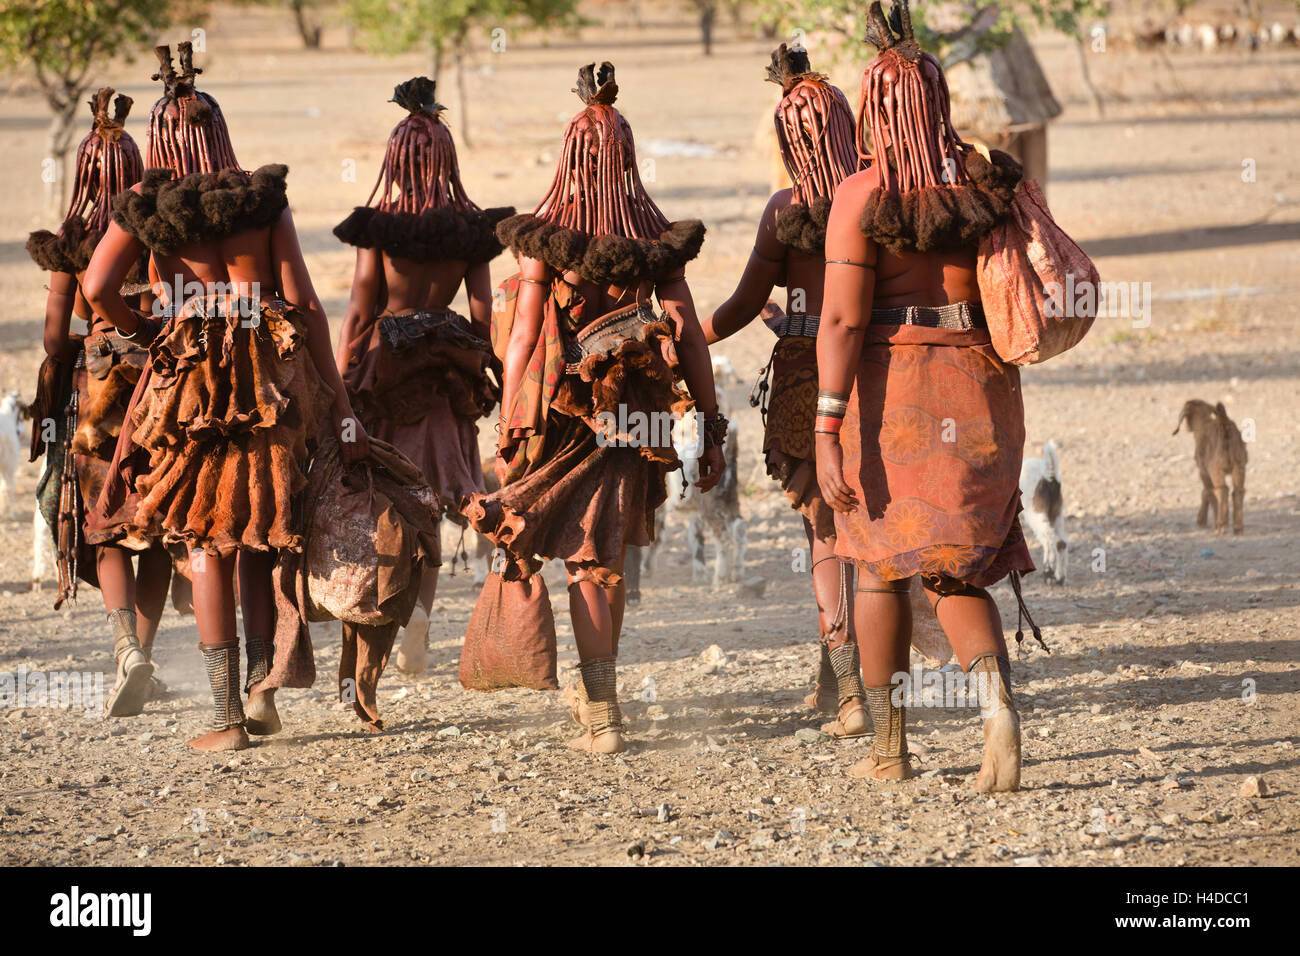 Himba women go back to the village near Opuwo town in Namibia, South Africa - Stock Image